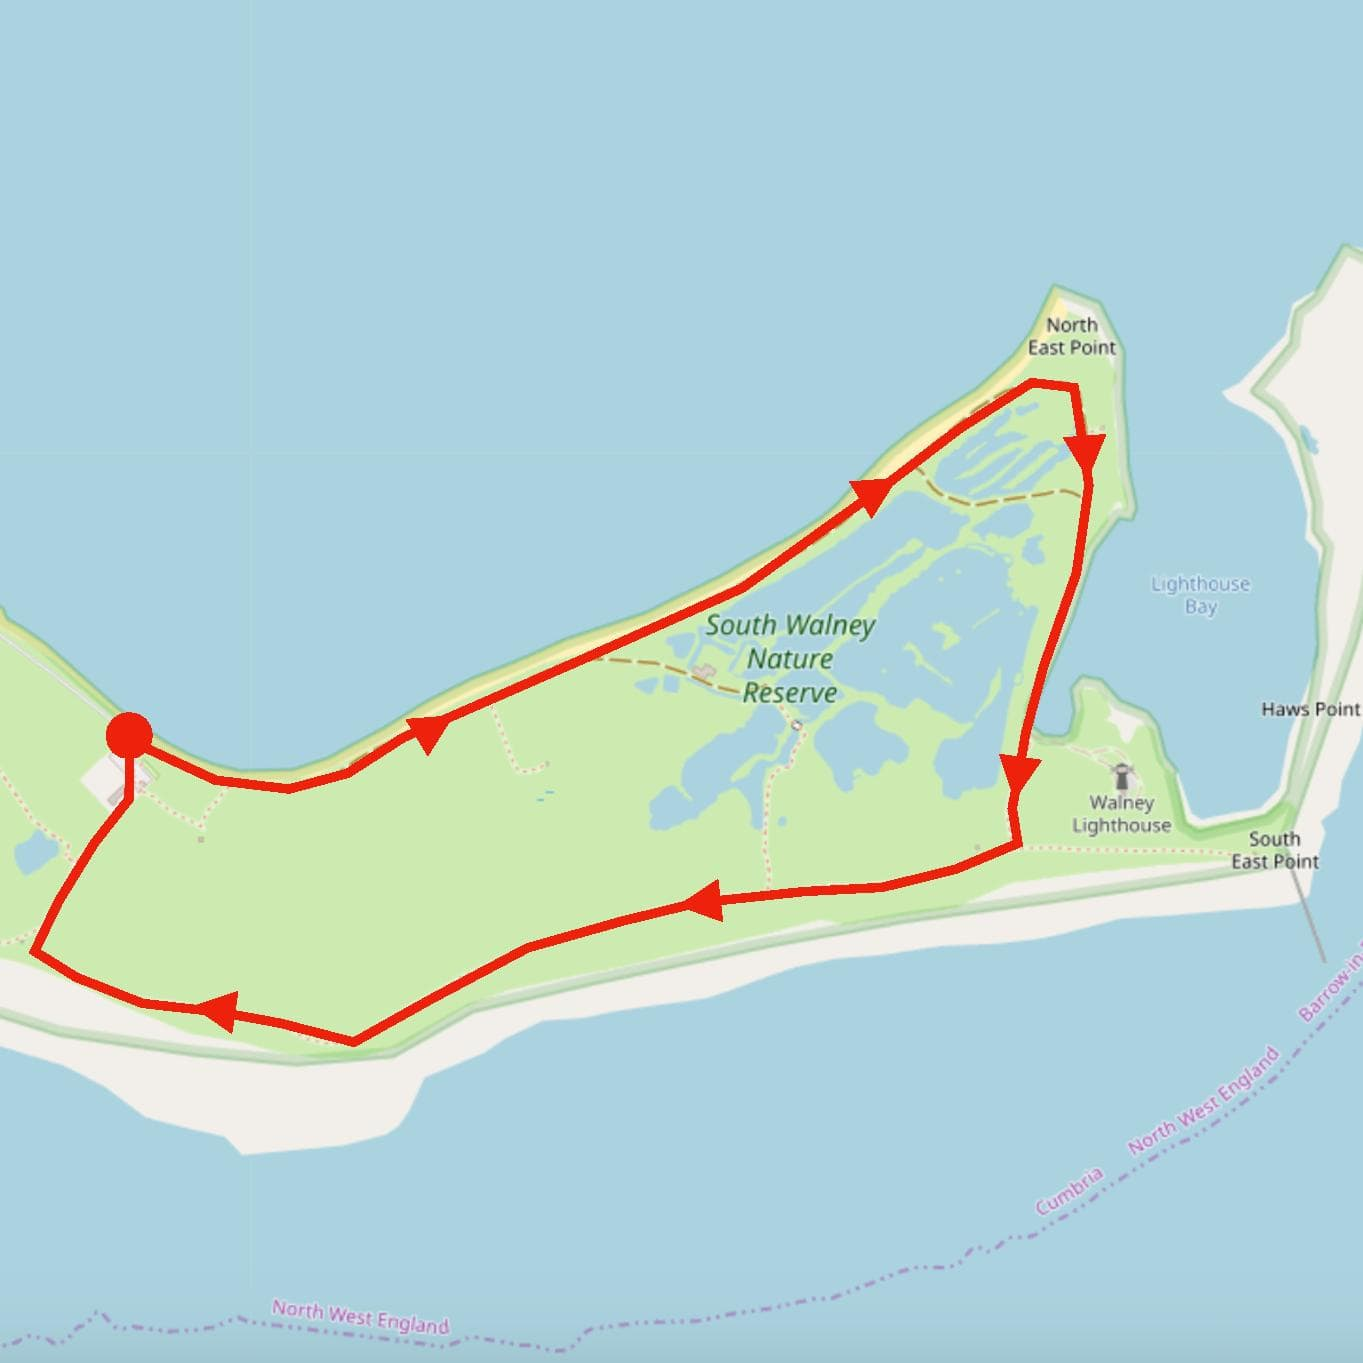 South Walney Nature Reserve route